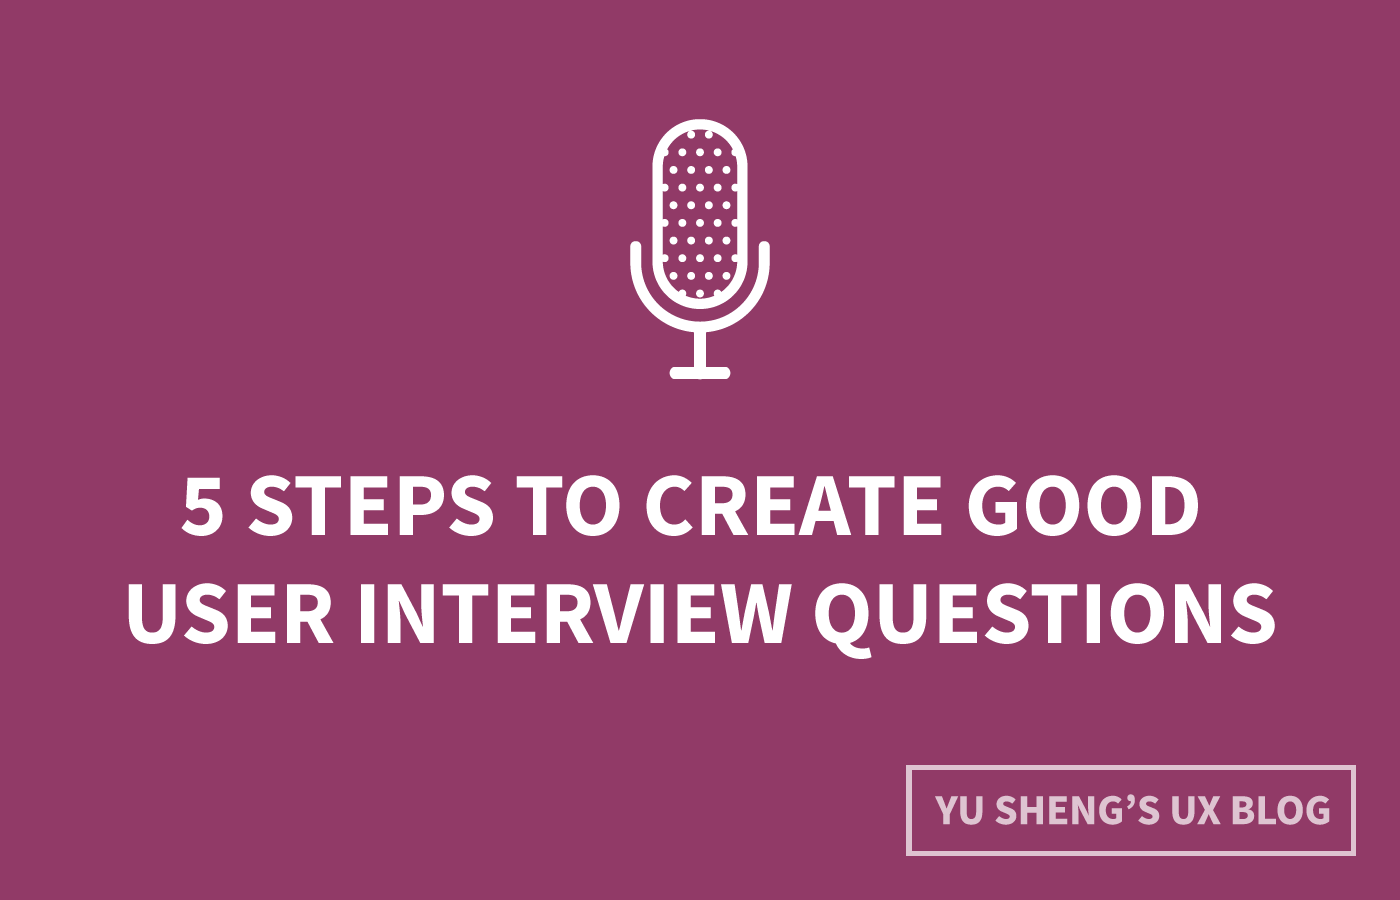 5 steps to create good user interview questions by @metacole – a comprehensive guide